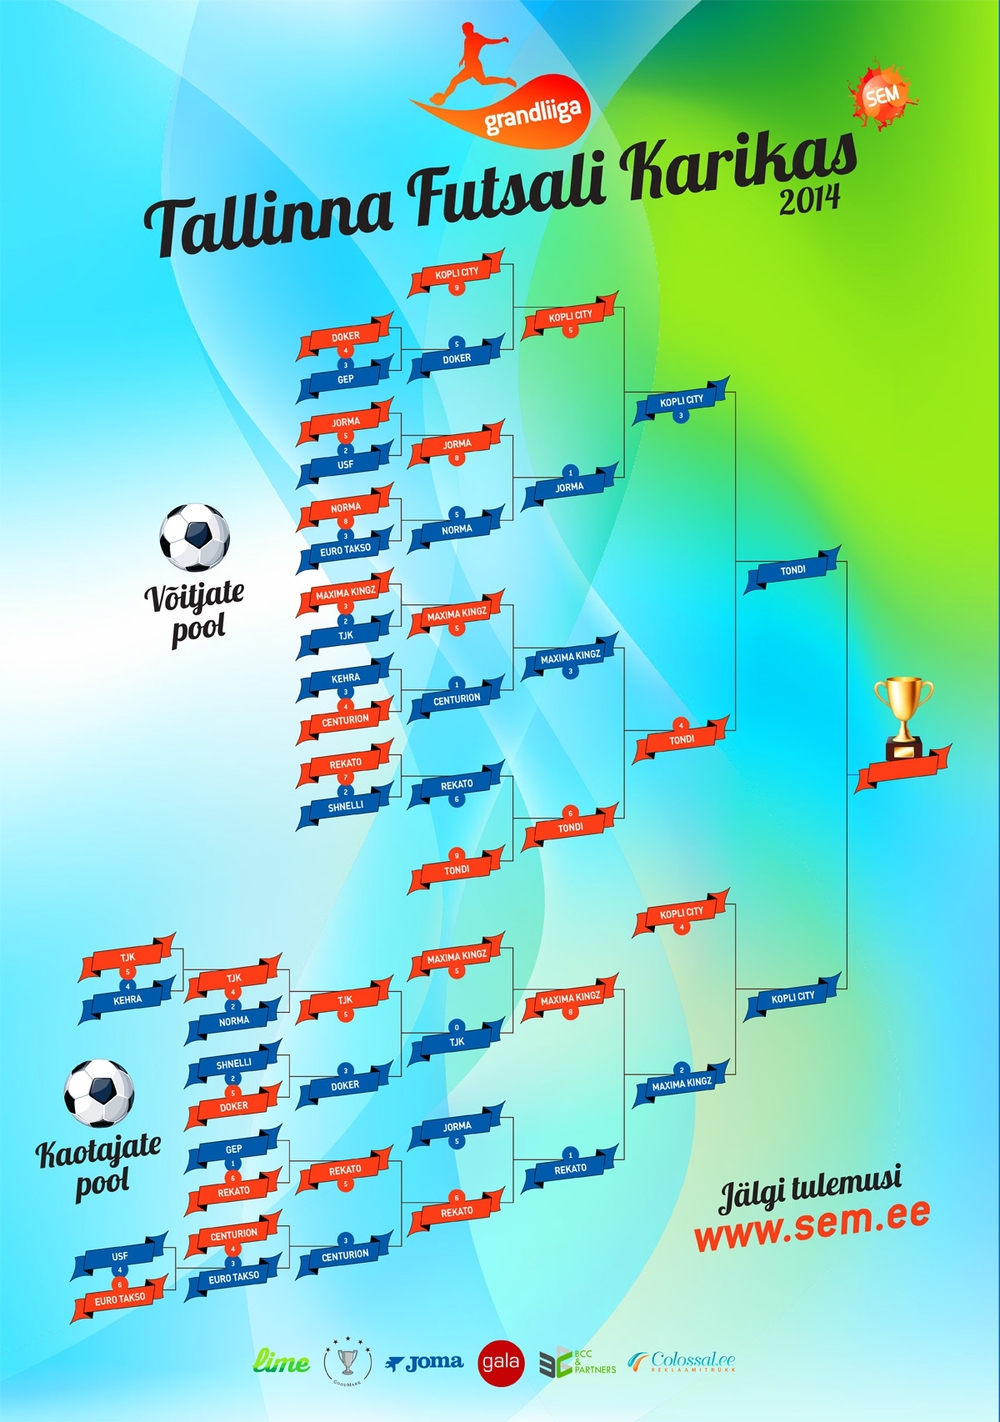 The double-elimination formula and the brackets of the Tallinn Futsal Cup - click to enlarge